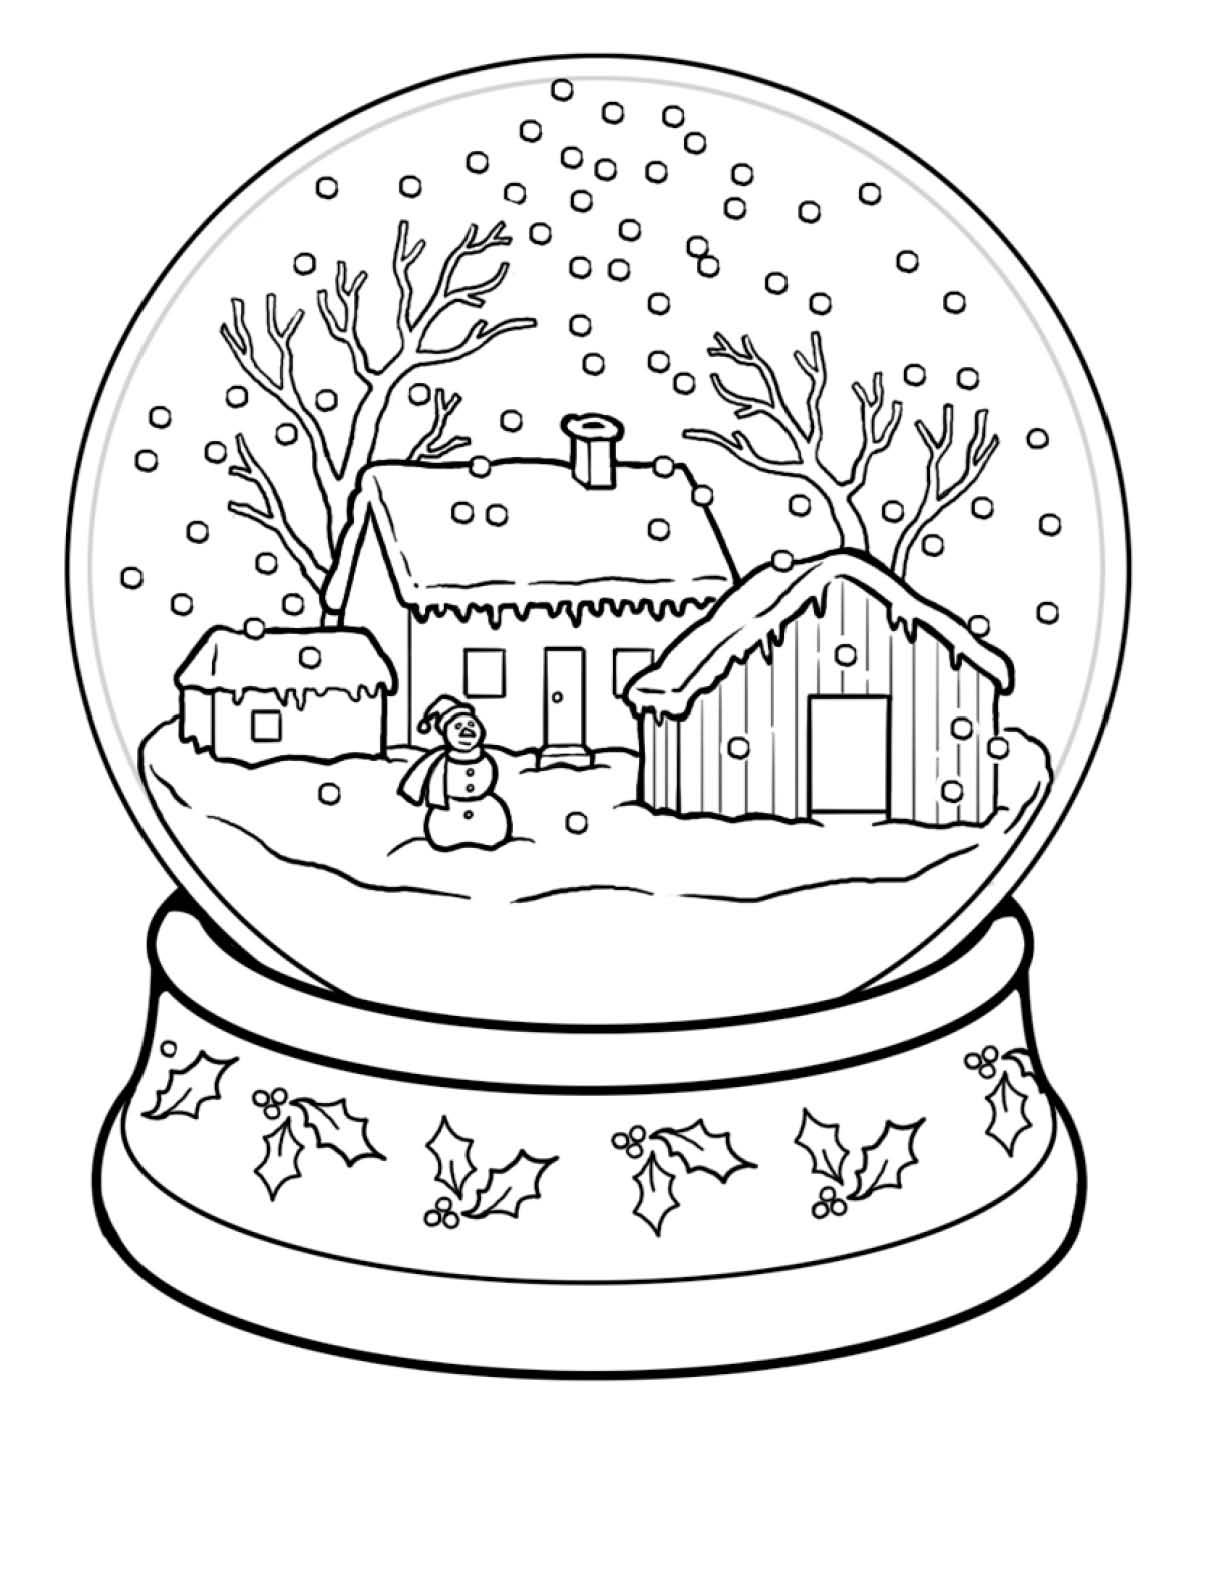 Kids christmas coloring and activity sheets - Printble Christmas Snow Globe Coloring Pages For Kids Christmas Snow Globe Coloring Pages Fargelegge Tegninger Activities Worksheets Clipart For Kids